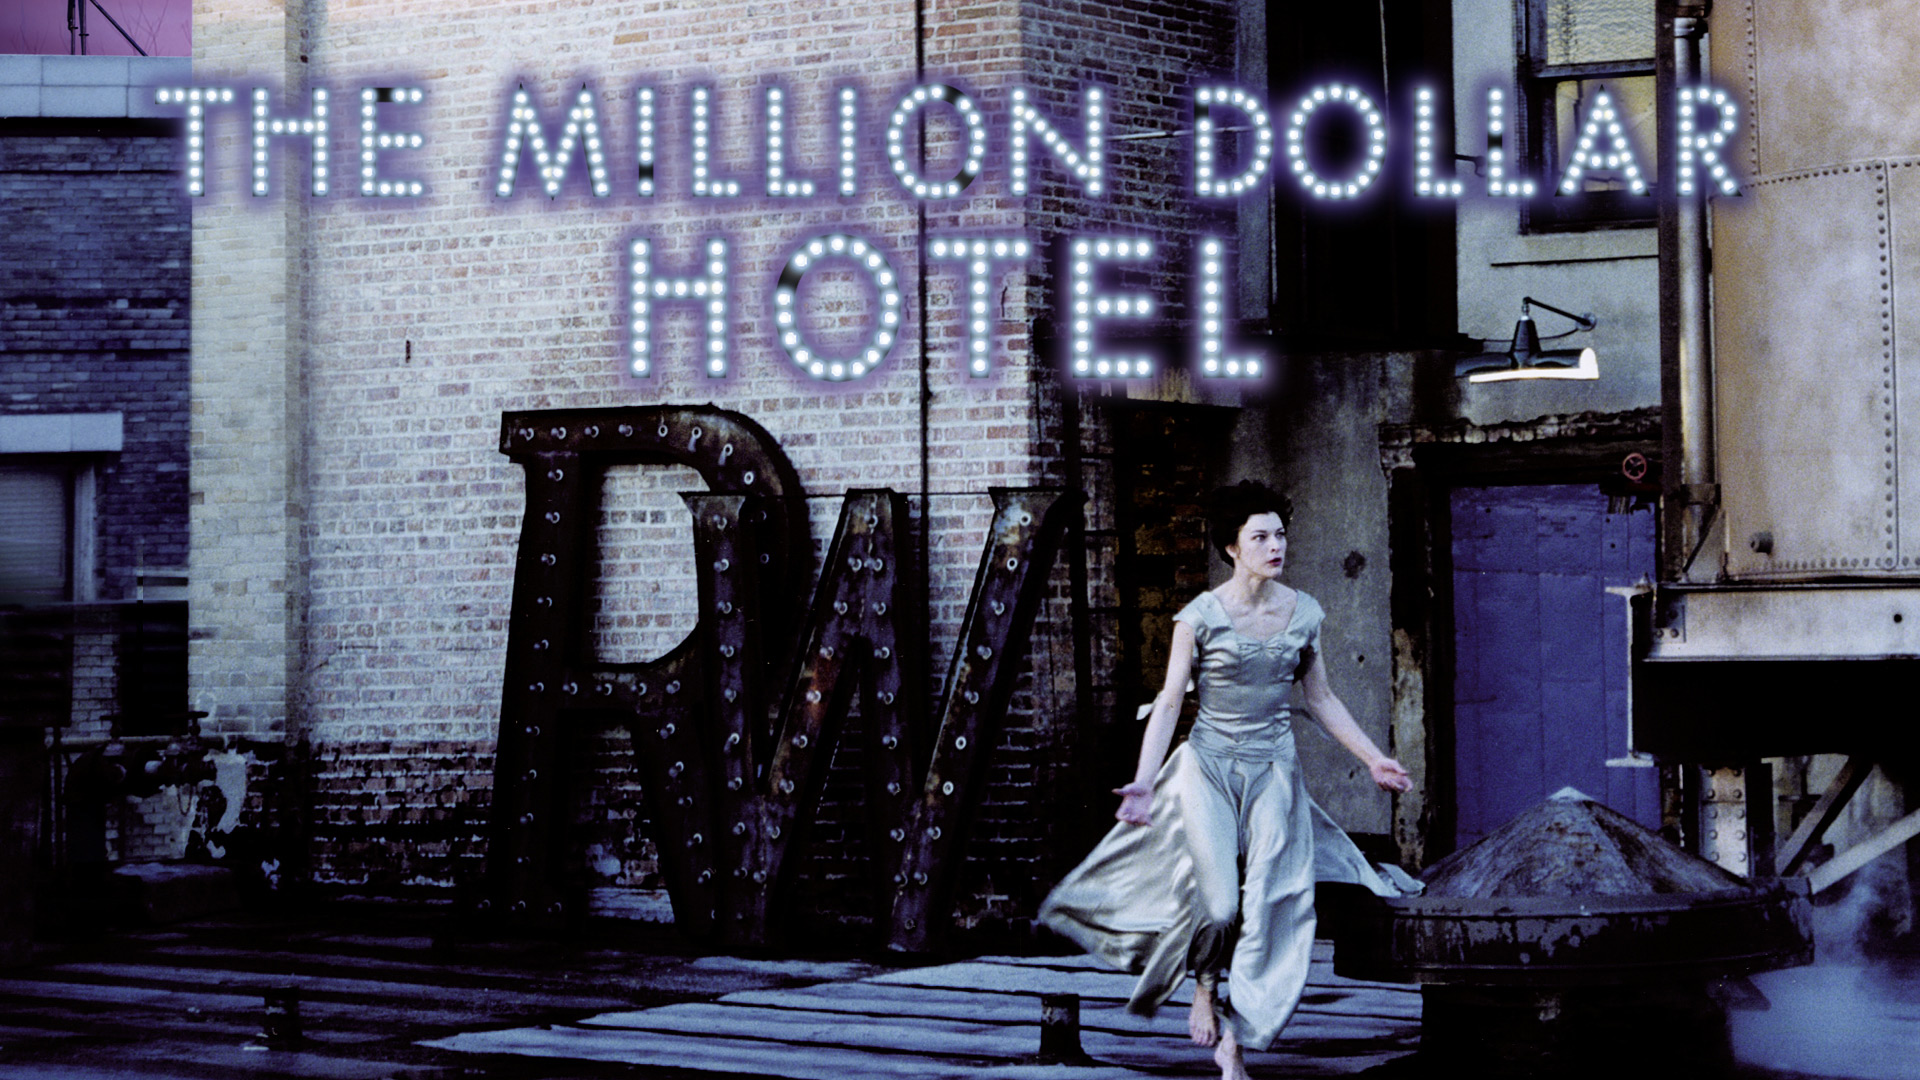 La colonna sonora del film girato da Wim Wenders nel 2000, che vede Jeremy Davies e Milla Jovovich nei ruoli dei protagonisti Tom Tom ed Eloise, è frutto della collaborazione tra gli U2 ed un gruppo di musicisti raccolti sotto il nome di The Million Dollar Hotel Band, tra i quali figurano Brian Eno, Bill Frisell, Flood e la stessa Milla Jovovich alla voce.  (clicca sul titolo per sfogliare la cultgallery dedicata al film The Million Dollar Hotel) The Million Dollar Hotel, poster cult cinema movie milla jovovich cultstories cult stories  cultstories  cinema  cult story  cultstory  art  culture  music  ipse dixit  aneddoti  citazioni  frasi famose  aforismi immagini  foto  personaggi  cultura musica storie  facts  fatti  celebrità  vip  cult the million dollar hotel streaming the million dollar hotel soundtrack the million dollar hotel frasi the million dollar hotel trailer the million dollar hotel youtube the million dollar hotel streaming ita the million dollar hotel u2 the million dollar hotel ost the million dollar hotel cast the million dollar hotel mymovies the million dollar hotel film the million dollar hotel album the million dollar hotel allocine the million dollar hotel altyazı the million dollar hotel altyazılı izle the million dollar hotel amazon the million dollar hotel arabic subtitles the million dollar hotel allociné the million dollar hotel avi the million dollar hotel los angeles the million dollar hotel l'amore the million dollar hotel band the million dollar hotel bono the million dollar hotel bluray the million dollar hotel box office the million dollar hotel bande annonce the million dollar hotel bo the million dollar hotel bso the million dollar hotel book the million dollar hotel bande-annonce vf the million dollar hotel bande annonce fr frasi di the million dollar hotel trama di the million dollar hotel colonna sonora di the million dollar hotel the million dollar hotel the million dollar hotel trama the million dollar hotel imdb the million dollar hotel trailer ita the million dollar hotel film completo the million dollar hotel full movie the million dollar hotel filmup the million dollar hotel finale the million dollar hotel film completo ita the million dollar hotel film streaming the million dollar hotel free download the million dollar hotel filmscoop the million dollar hotel hd izle million dollar hotel / the million dollar hotel (2000) u2 the million dollar hotel the ground beneath her feet the million dollar hotel port.hu the hundred million dollar hotel jon hassell the million dollar hotel the million dollar hotel hd where is the million dollar hotel i am the walrus million dollar hotel the million dollar hotel john lennon the million dollar hotel milla jovovich the million dollar hotel kickass the million dollar hotel konusu the million dollar hotel kritik the million dollar hotel kinomaniak the million dollar hotel location the million dollar hotel lyrics the million dollar hotel la the million dollar hotel lektor pl the million dollar hotel never let me go the million dollar hotel soundtrack lyrics u2 the million dollar hotel lyrics dancin shoes lyrics million dollar hotel the million dollar hotel movie the million dollar hotel music the million dollar hotel mel gibson the million dollar hotel movie online the million dollar hotel memorable quotes the million dollar hotel mp3 the million dollar hotel movie review the million dollar hotel moviemeter the million dollar hotel movie trailer the million dollar hotel napisy the million dollar hotel napisy pl the million dollar hotel netflix million dollar hotel new york million dollar hotel nowvideo million dollar hotel never let me go lyrics the new million dollar hotel rosslyn million dollar hotel nikki jean lyrics the million dollar hotel 2000 limited 720p brrip x264-playnow napisy the million dollar hotel online watch the million dollar hotel online watch free the million dollar hotel ost download the million dollar hotel online the million dollar hotel online subtitrat the million dollar hotel online subtitulada the million dollar hotel online pl the million dollar hotel online sa prevodom the million dollar hotel online free cast of the million dollar hotel soundtrack of the million dollar hotel satellite of love the million dollar hotel the million dollar hotel satellite of love the million dollar hotel – satellite of love the million dollar hotel plot the million dollar hotel poesia the million dollar hotel plot synopsis the million dollar hotel pelicula the million dollar hotel port the million dollar hotel pelicula online the million dollar hotel prevod the million dollar hotel peb the million dollar hotel pl the million dollar hotel quotes the million dollar hotel quote the million dollar hotel qartulad the million dollar hotel review the million dollar hotel rotten tomatoes the million dollar hotel recensione the million dollar hotel recensione film the million dollar hotel rotten the million dollar hotel recenzja the million dollar hotel roger ebert the million dollar hotel soundtrack rar the million dollar hotel tim roth the million dollar hotel subtitles the million dollar hotel soundtrack download the million dollar hotel streaming megavideo the million dollar hotel script the million dollar hotel soundtrack free download the million dollar hotel subs the million dollar hotel songs the million dollar hotel trama film the million dollar hotel trama completa the million dollar hotel traduzione the million dollar hotel tumblr the million dollar hotel tracklist the million dollar hotel testi the million dollar hotel u2 soundtrack the million dollar hotel u2 traduzione million dollar hotel u2 song million dollar hotel u2 youtube million dollar hotel u2 lyrics u2 the million dollar hotel download video u2 the million dollar hotel million dollar hotel the first time u2 traduzione the million dollar hotel vk the million dollar hotel video the million dollar hotel vostfr the million dollar hotel ver online the million dollar hotel viooz the million dollar hotel ver pelicula the million dollar hotel vf the million dollar hotel vostfr ddl the million dollar hotel streaming vf the million dollar hotel watch online the million dollar hotel watch online free the million dollar hotel wiki the million dollar hotel wikipedia the million dollar hotel wikiquote the.million.dollar.hotel.2000.ws.dvdrip.divx-rvj.cd1 subtitles the million dollar hotel soundtrack wiki million dollar hotel watch million dollar hotel i am the walrus the.million.dollar.hotel.2000.ws.dvdrip.divx-rvj the million dollar hotel 2000 limited 720p brrip x264-playnow subtitles the.million.dollar.hotel.2000.german.dl.1080p.bluray.x264-details the.million.dollar.hotel.2000.german.720p.bluray.x264-details the million dollar hotel 2000 limited 720p brrip x264 playnow the million dollar hotel zalukaj million dollar hotel zwiastun million dollar hotel zitat the million dollar hotel 1080p the million dollar hotel part 1 отель «миллион долларов» / the million dollar hotel (1999) the million dollar hotel 2000 the million dollar hotel (2000) trailer the million dollar hotel (2000) imdb the million dollar hotel (2000) filmweb the million dollar hotel 2000 subtitles film the million dollar hotel 2000 6 million dollar hotel room 7 million dollar hotel bill 7 million dollar hotel bill princess 10 million dollar hotel